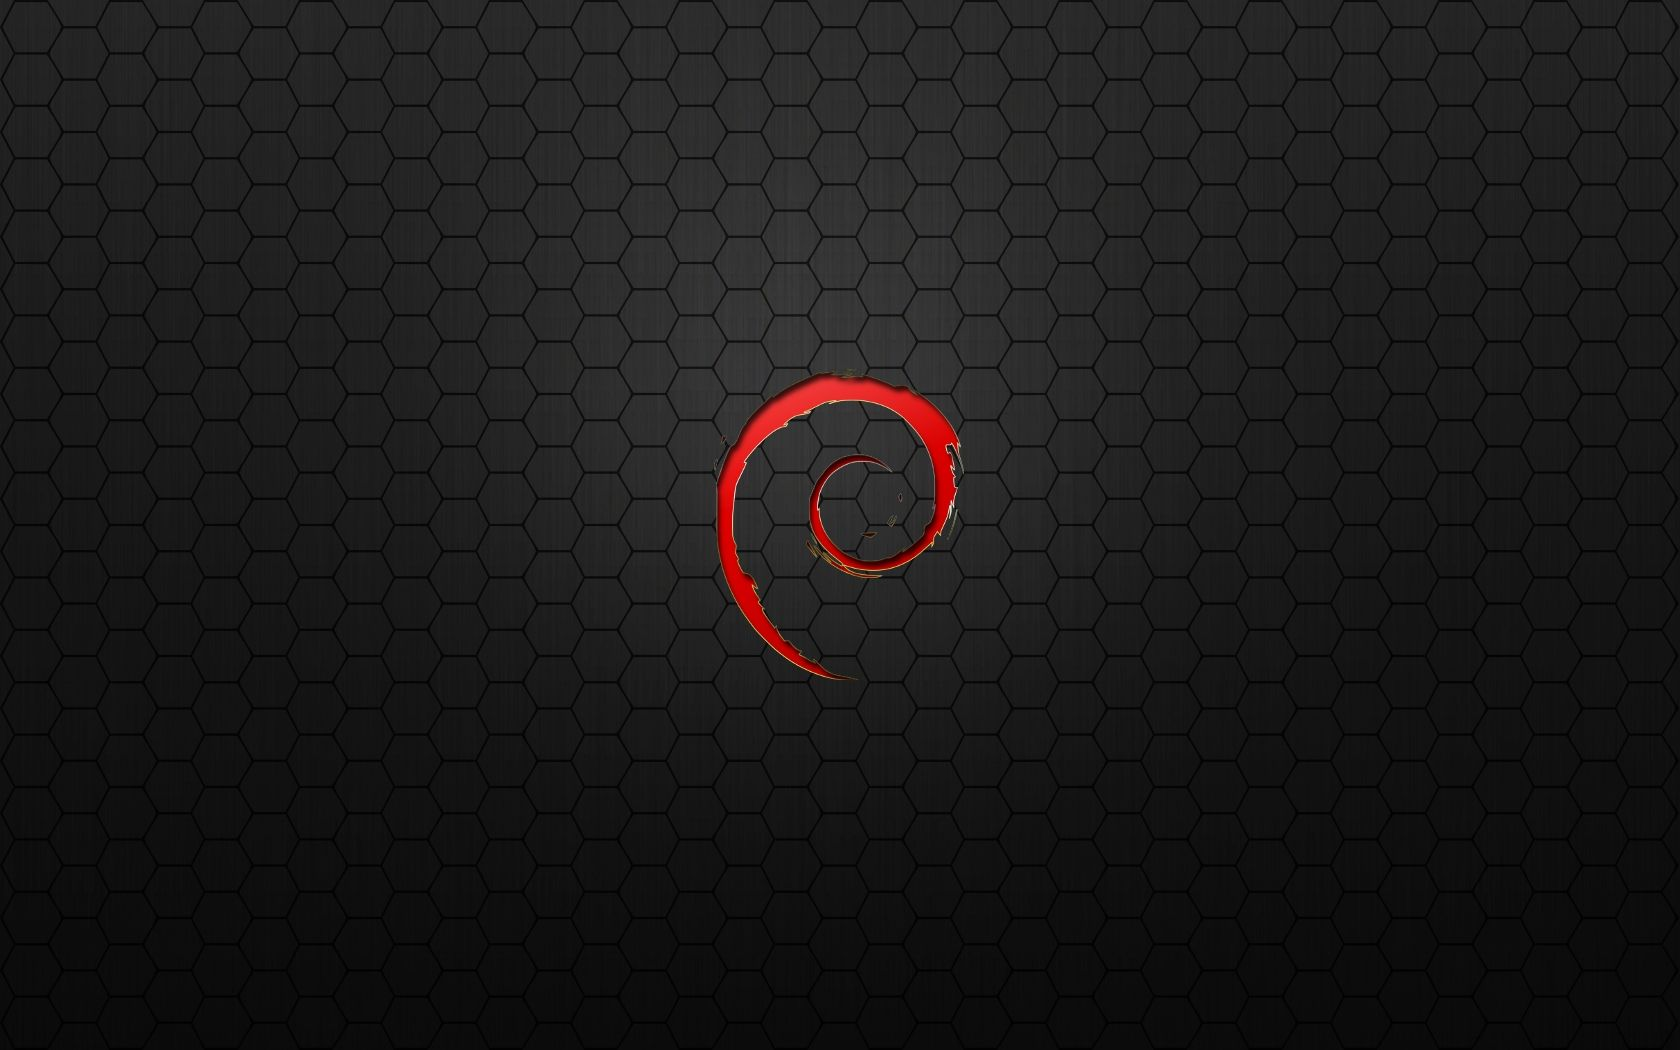 Download Linux Debian Background Images Galery Wallpaper HD 1680x1050